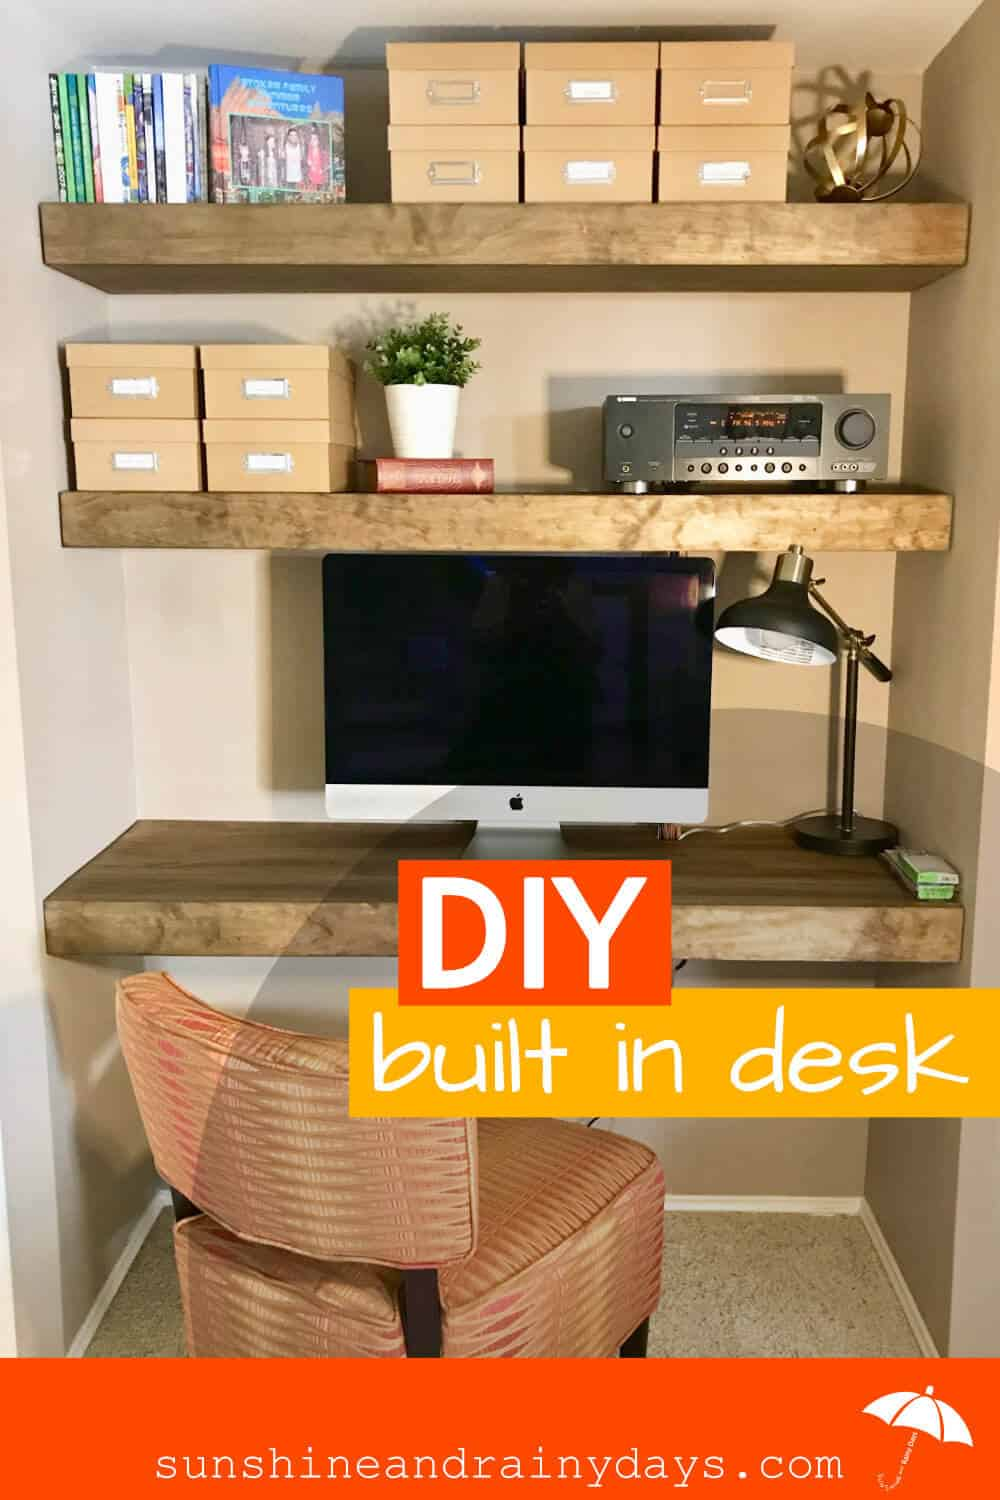 DIY Floating Built In Desk And Shelves - Sunshine And Rainy Days